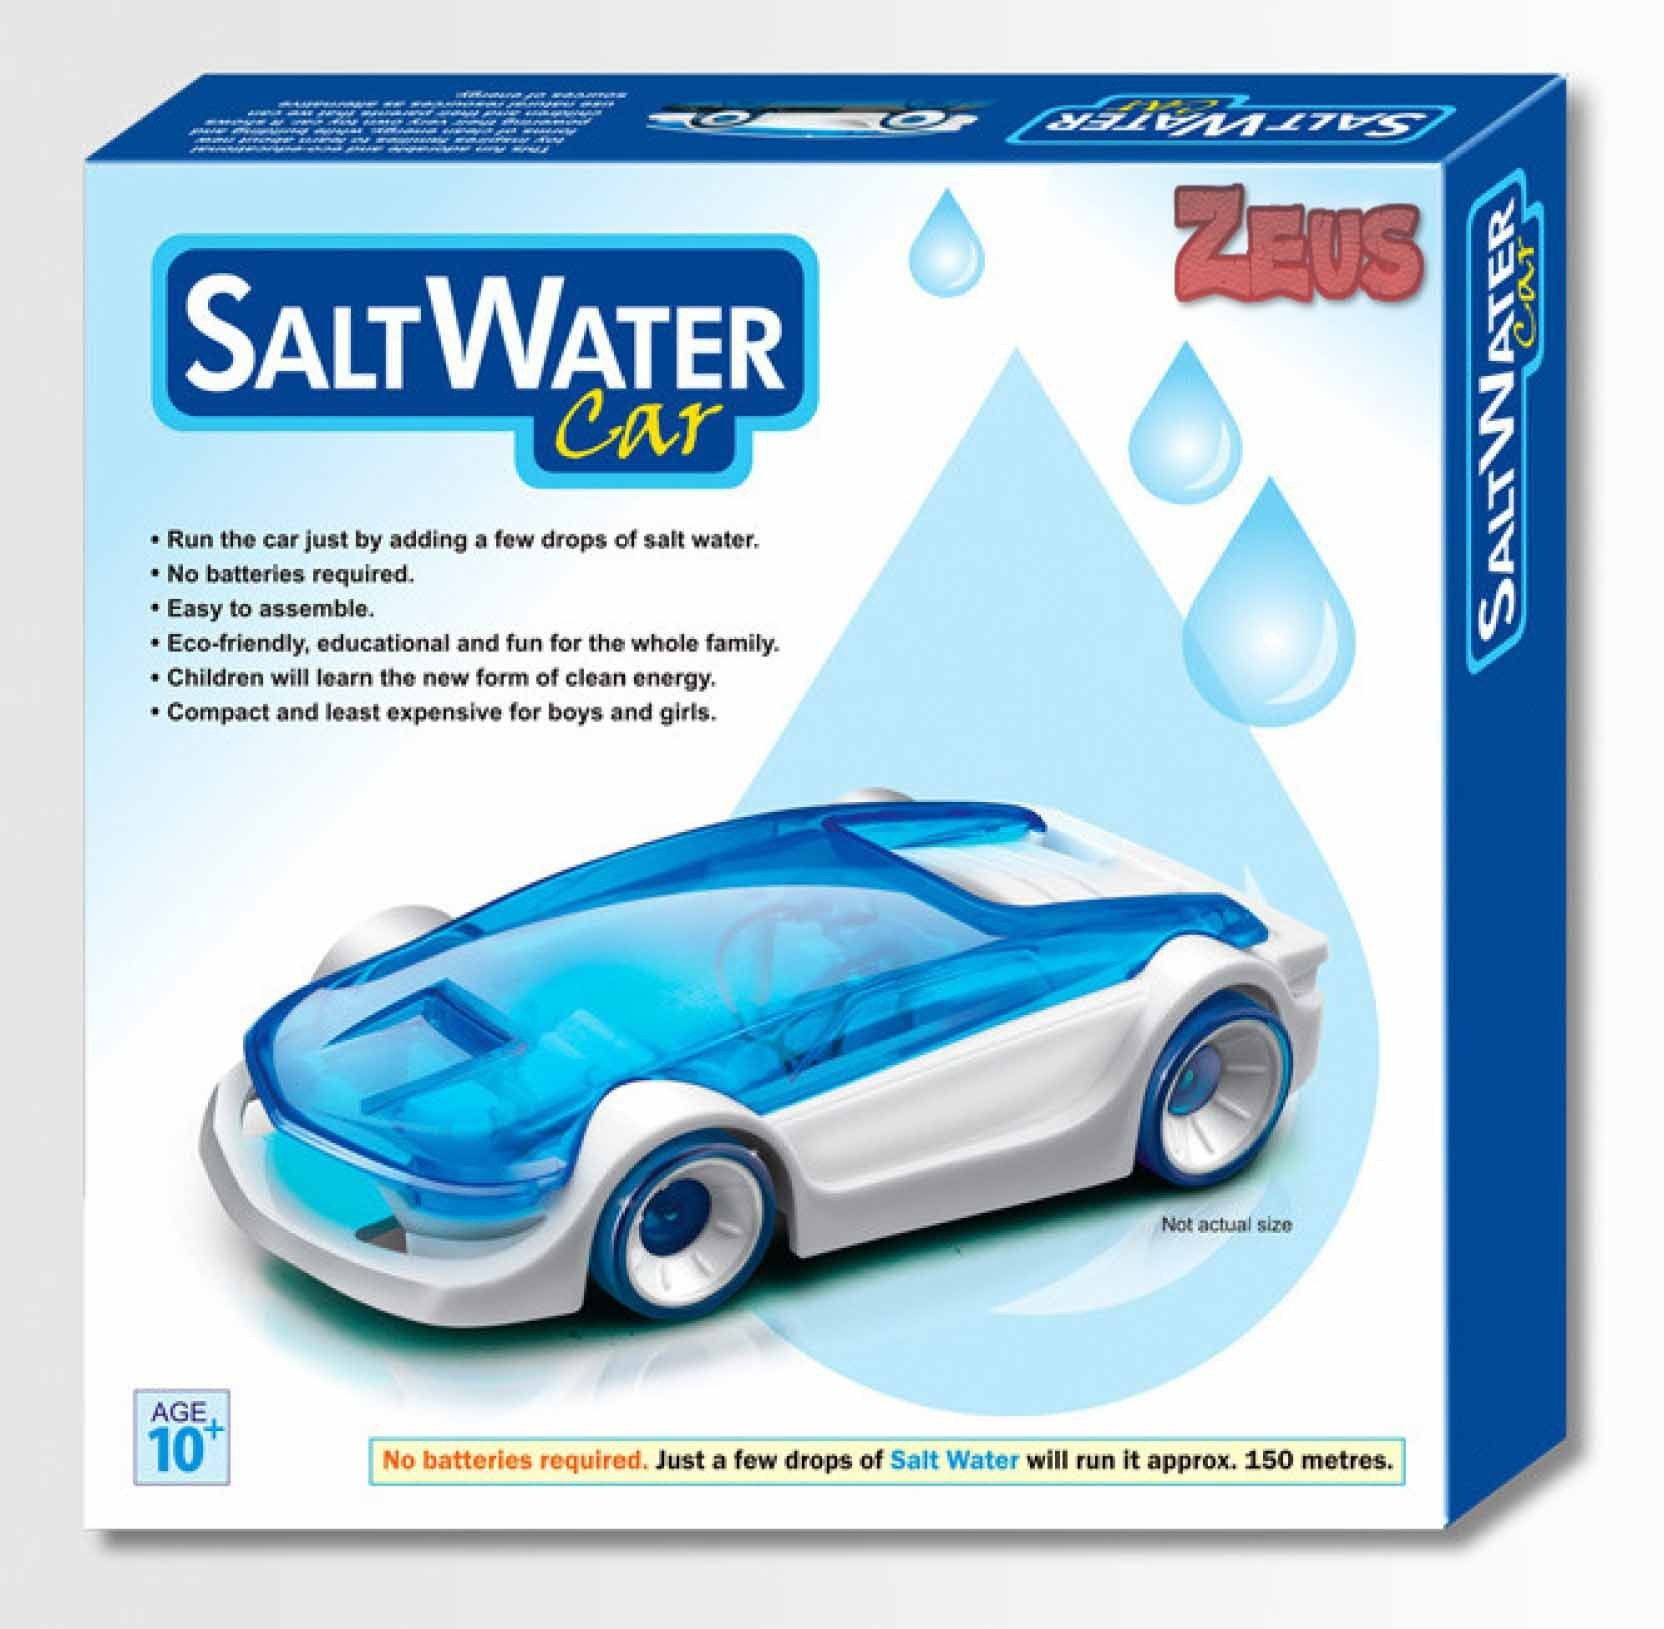 Zeus Salt Water Fuel Cell Car DIY Kit Green Energy